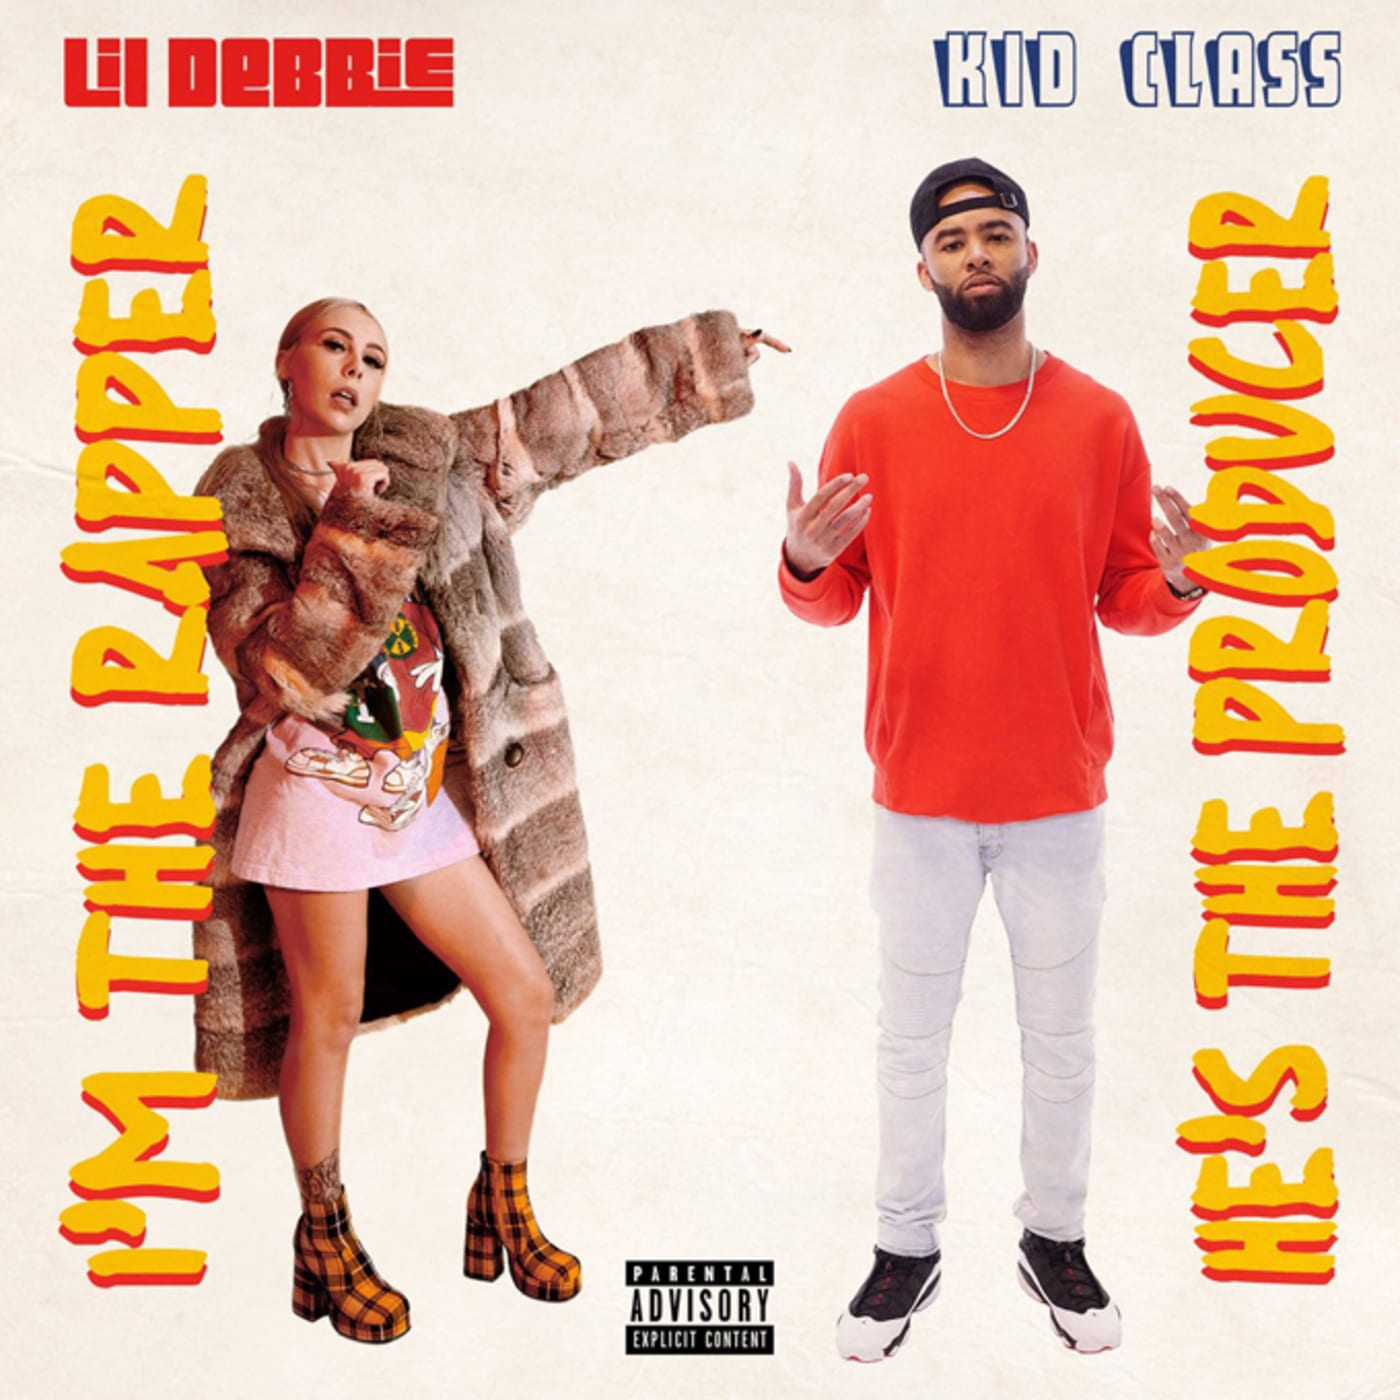 Lil Debbie and Kid Class 'I'm the Rapper, He's the Producer' cover